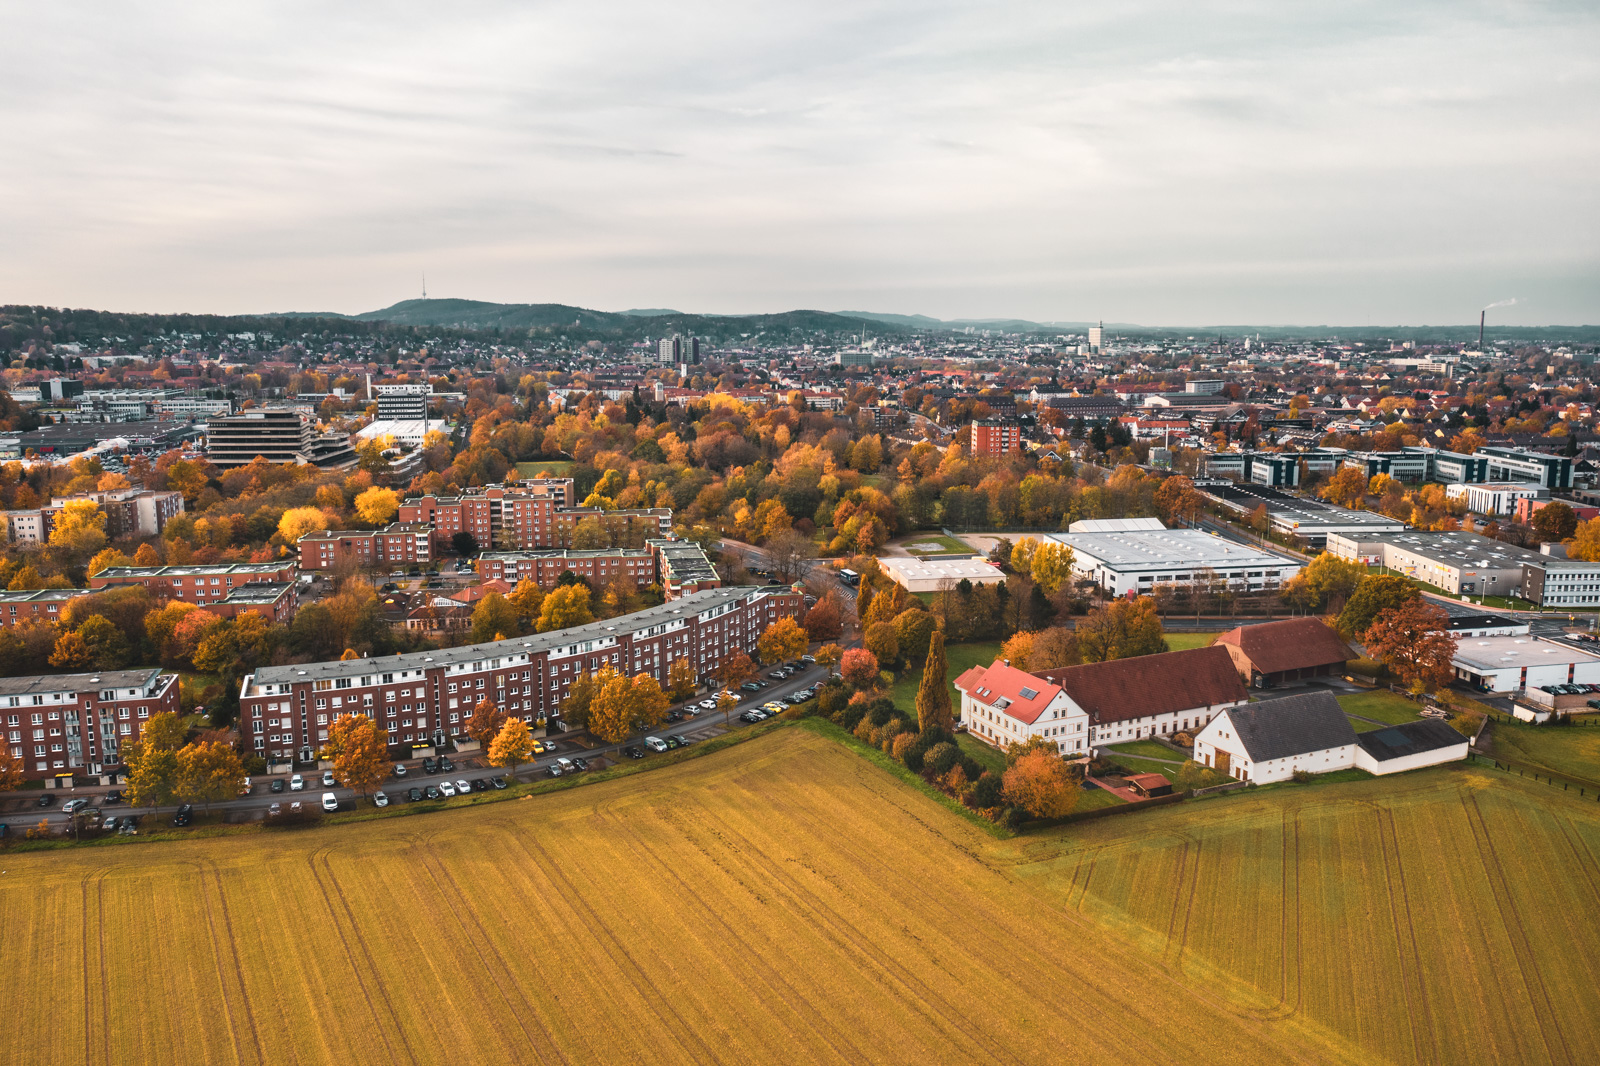 Bielefeld city centre seen from the Stieghorst district (Germany).